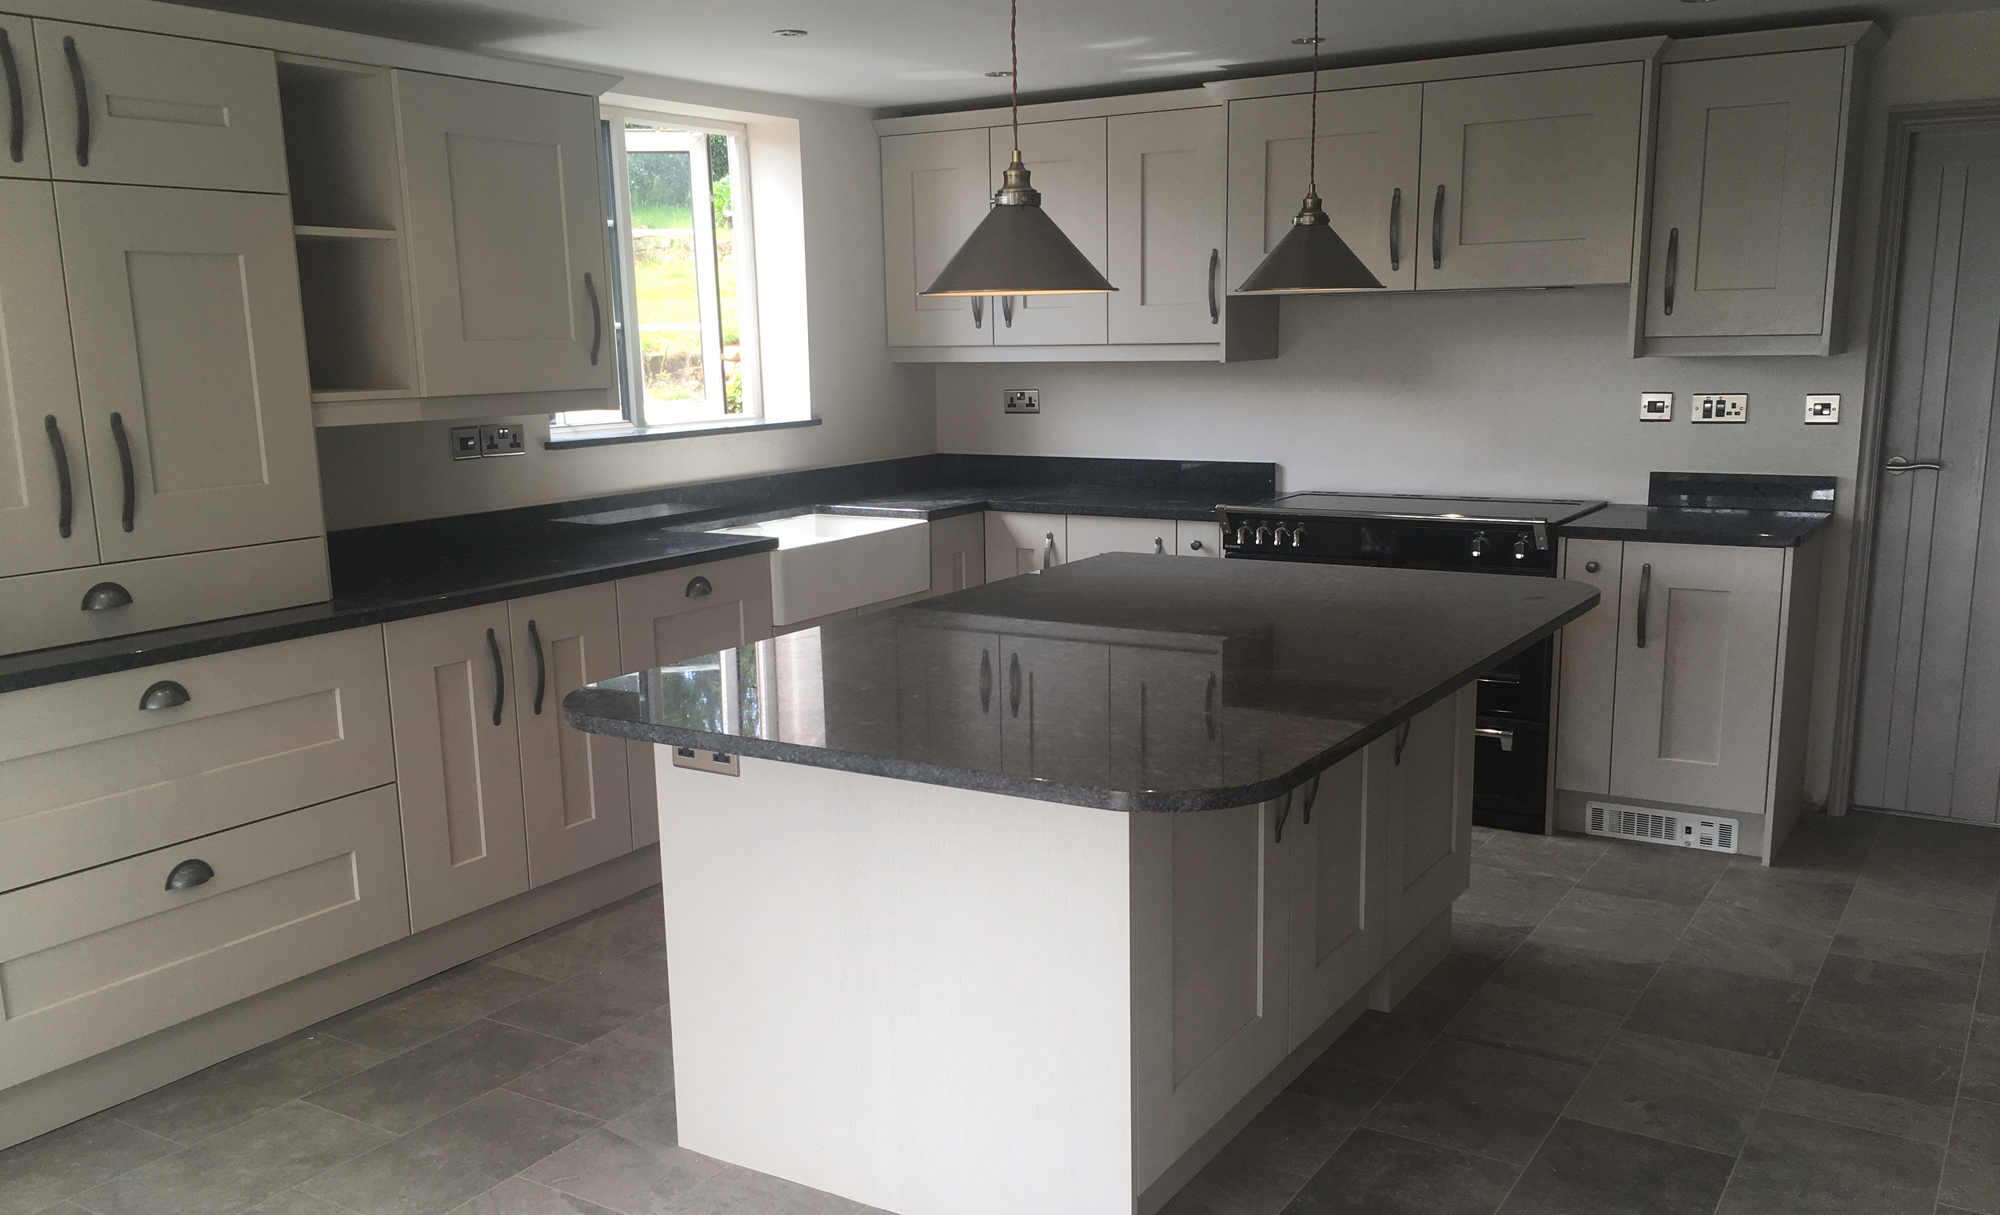 Kitchen Stori Clonmel Kitchen Island for a home in Nottinghamshire